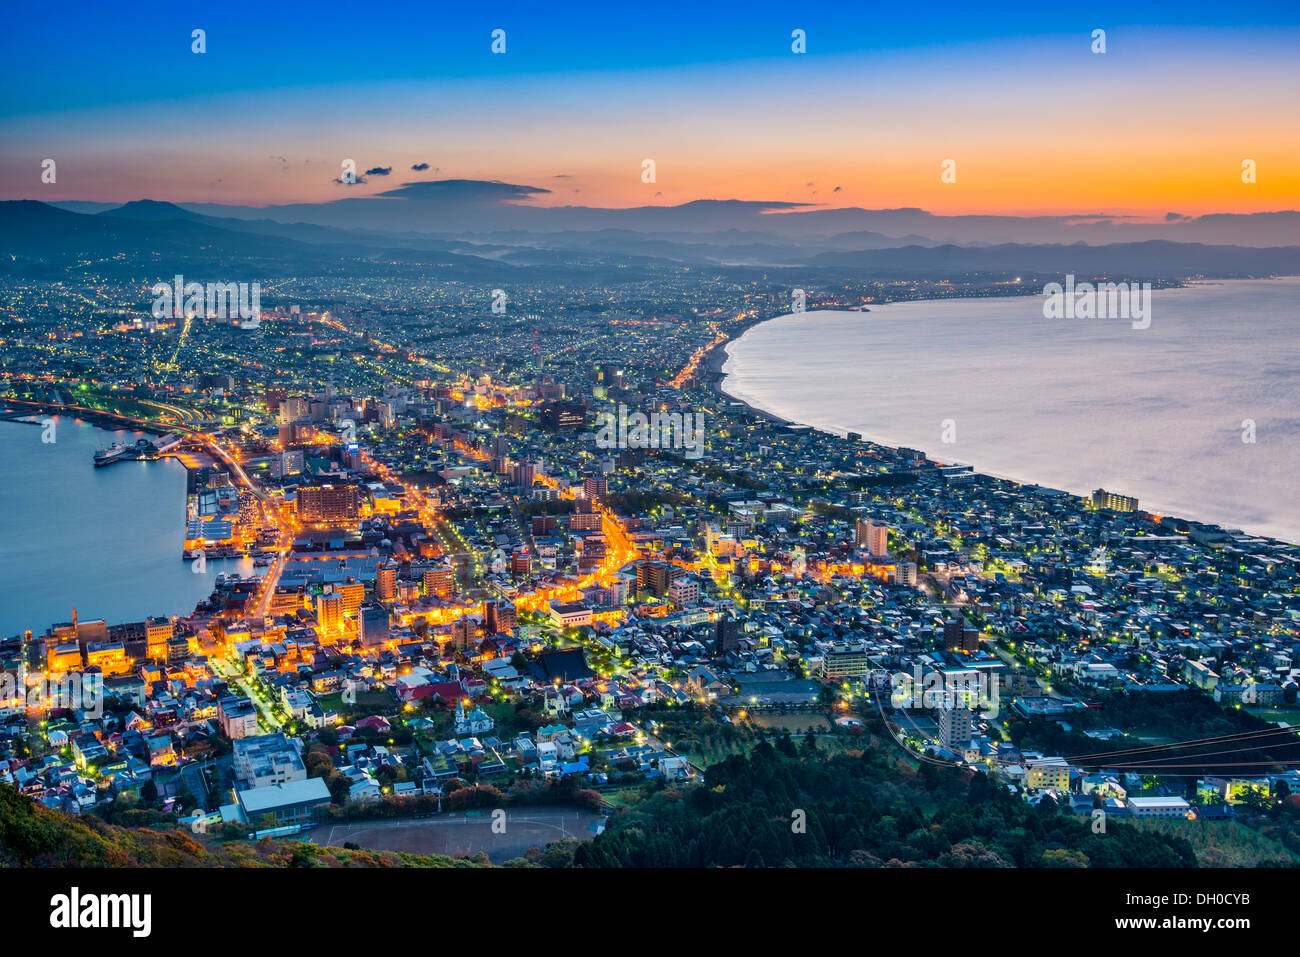 Hakodate, Japan viewed from Hakodate Mountain. - Stock Image